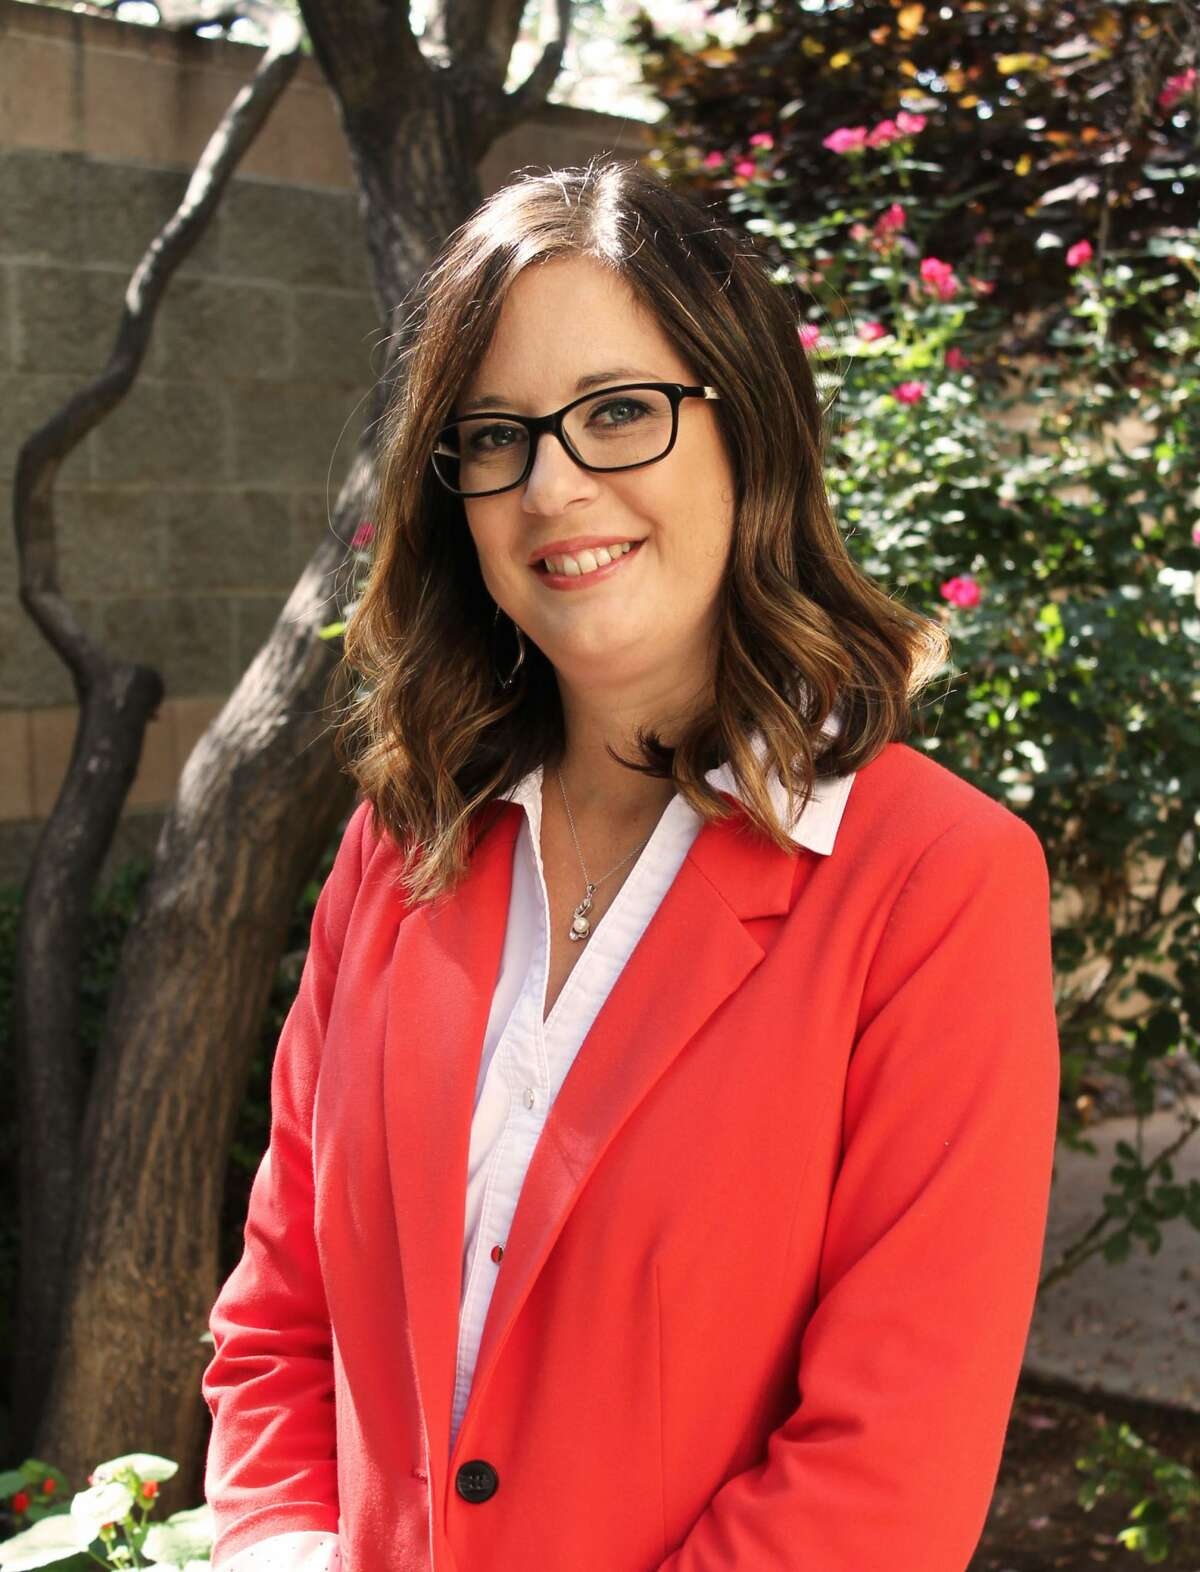 Tasa Richardson is the public relations manager for Midland Health.